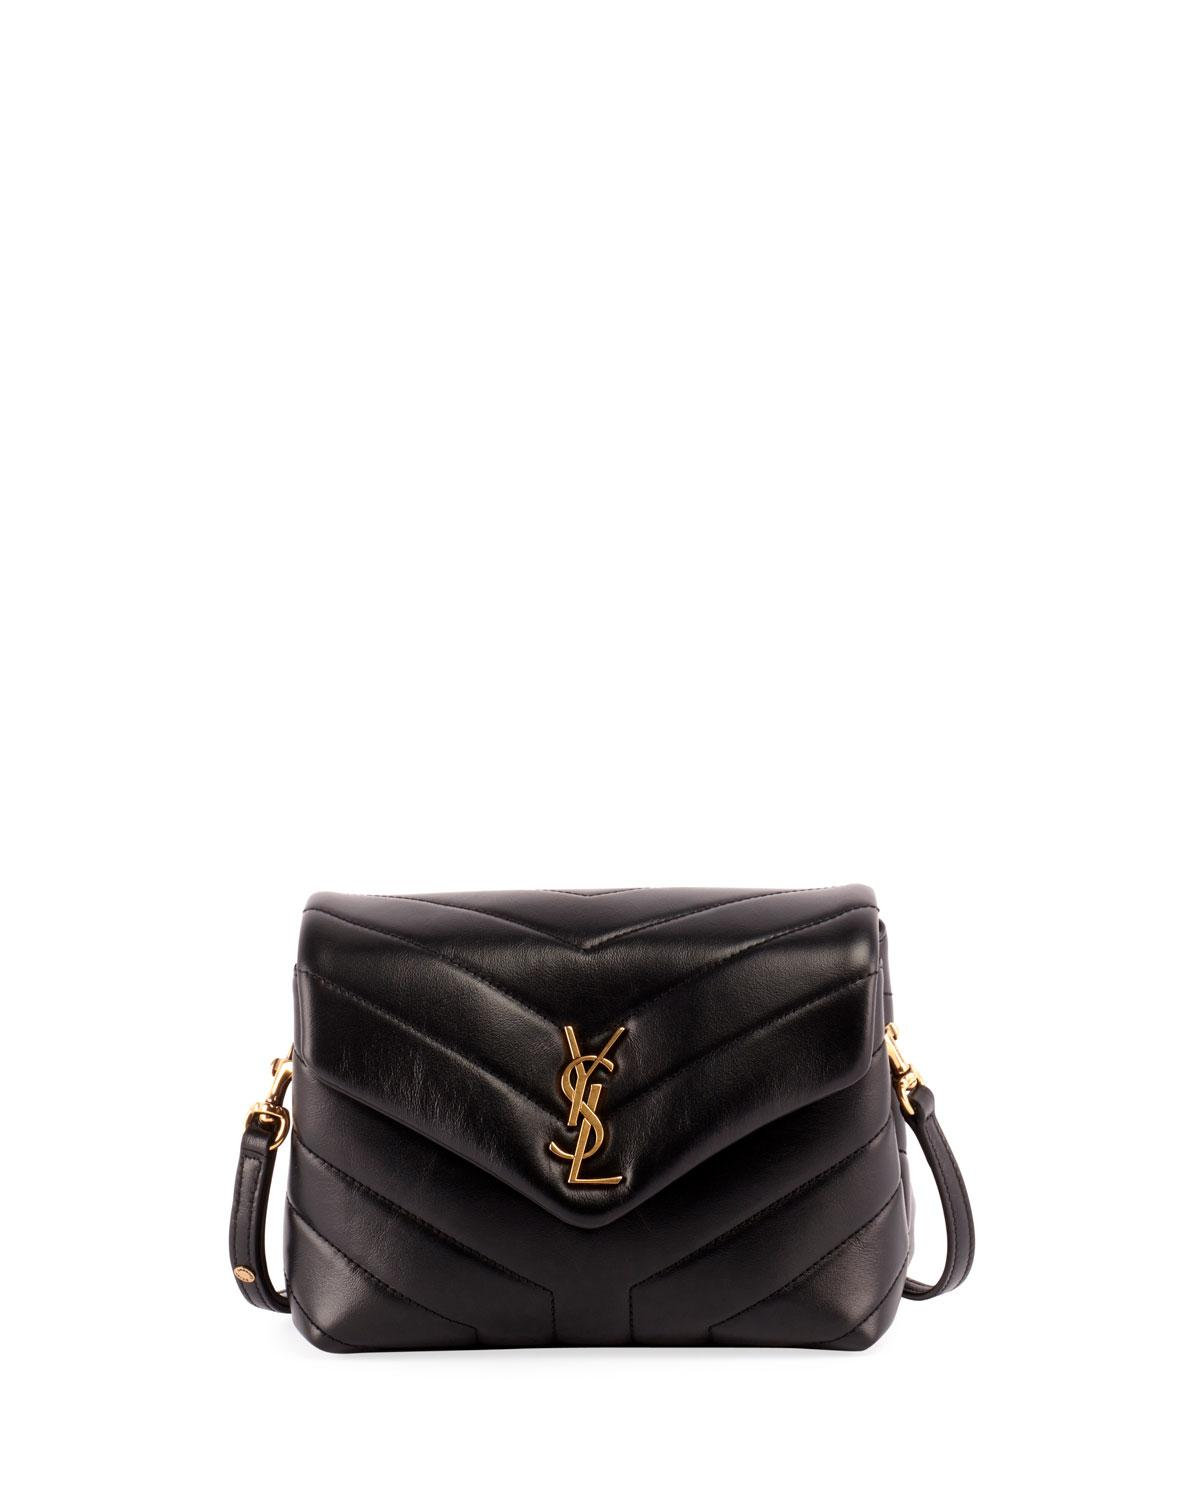 43096e1944b Saint Laurent Loulou Monogram Ysl Small V-Flap Chain Shoulder Bag - Lt.  Bronze